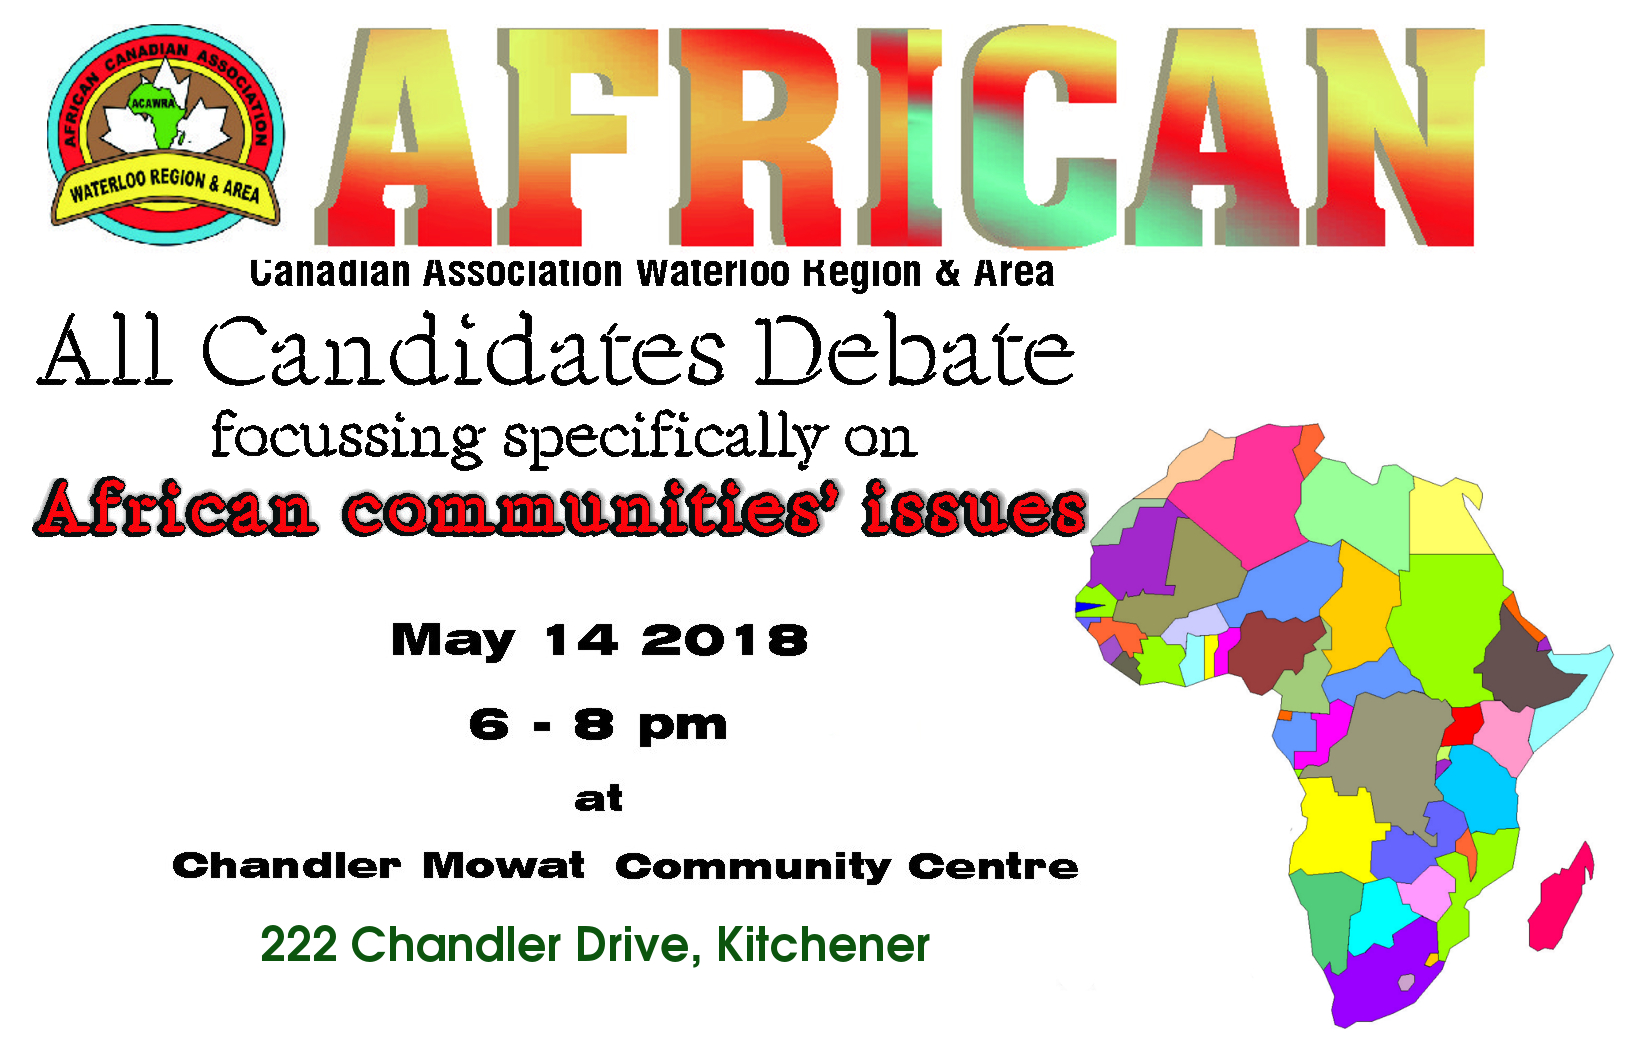 African Canadian association All Candidates Debate - May 14 2018, 6pm at Chandler Mowat Centre, 222 Chandler drive, Kitchener